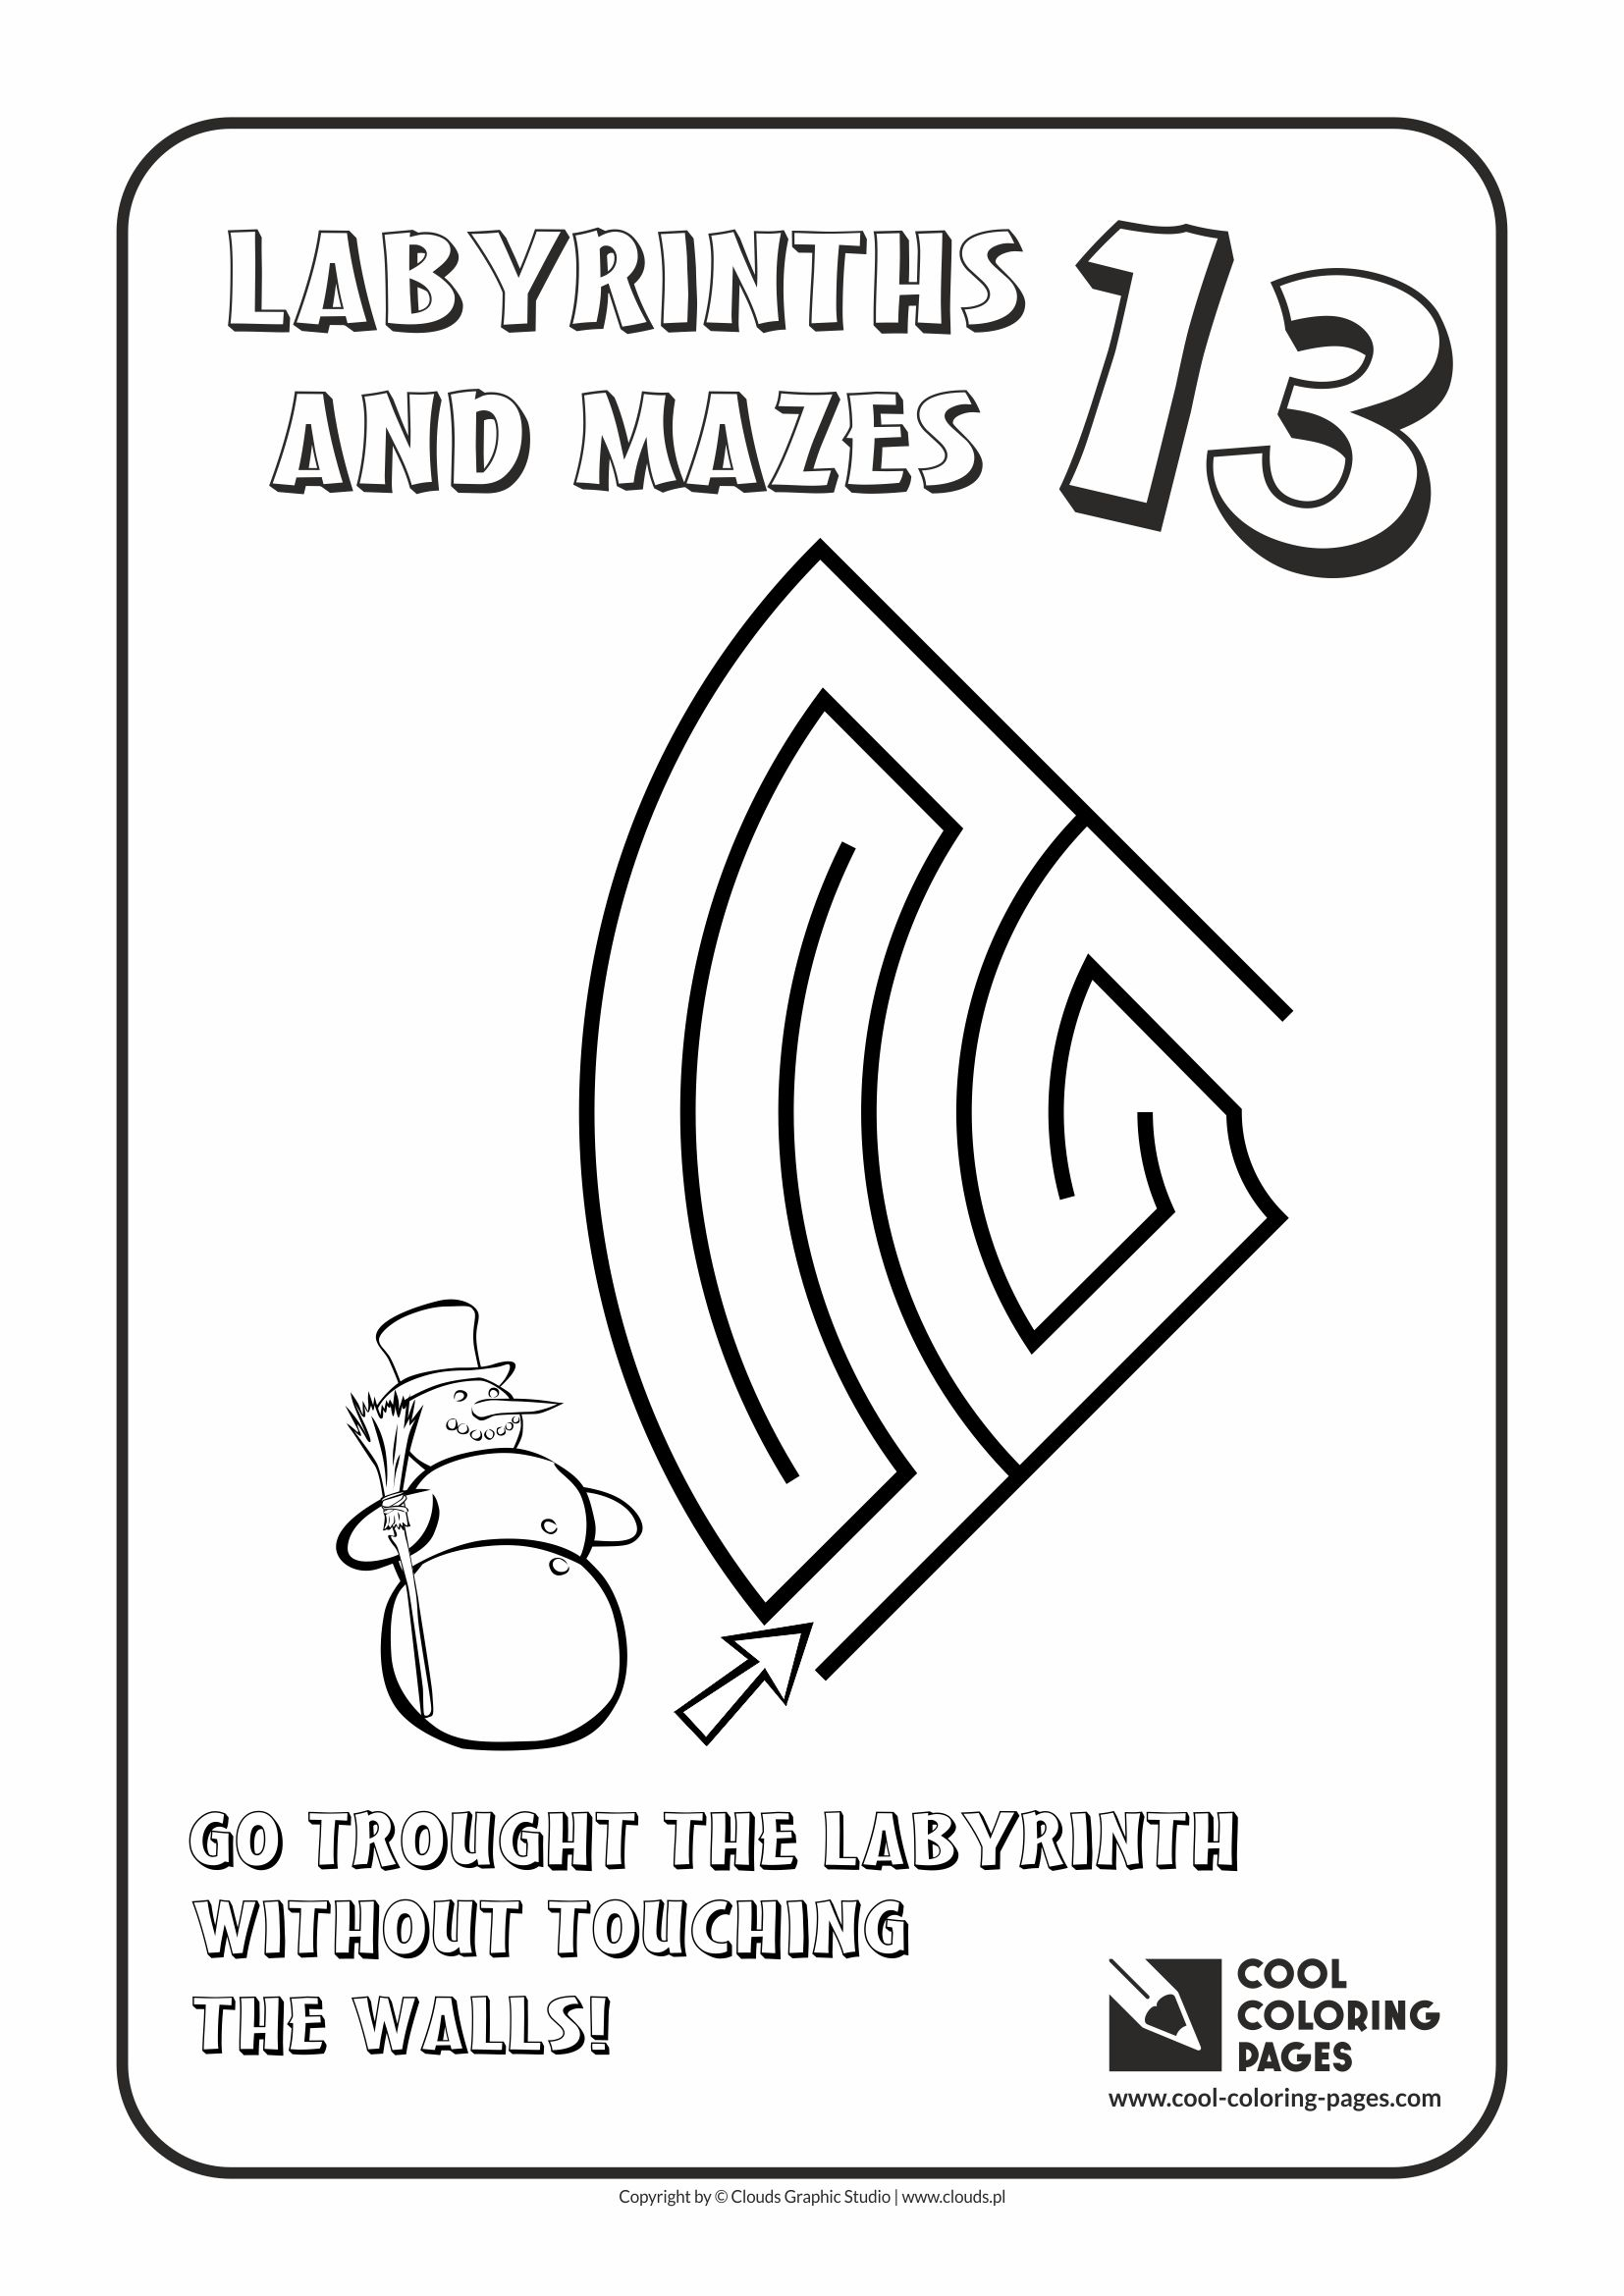 Cool Coloring Pages - Labyrinths and mazes / Maze no 13